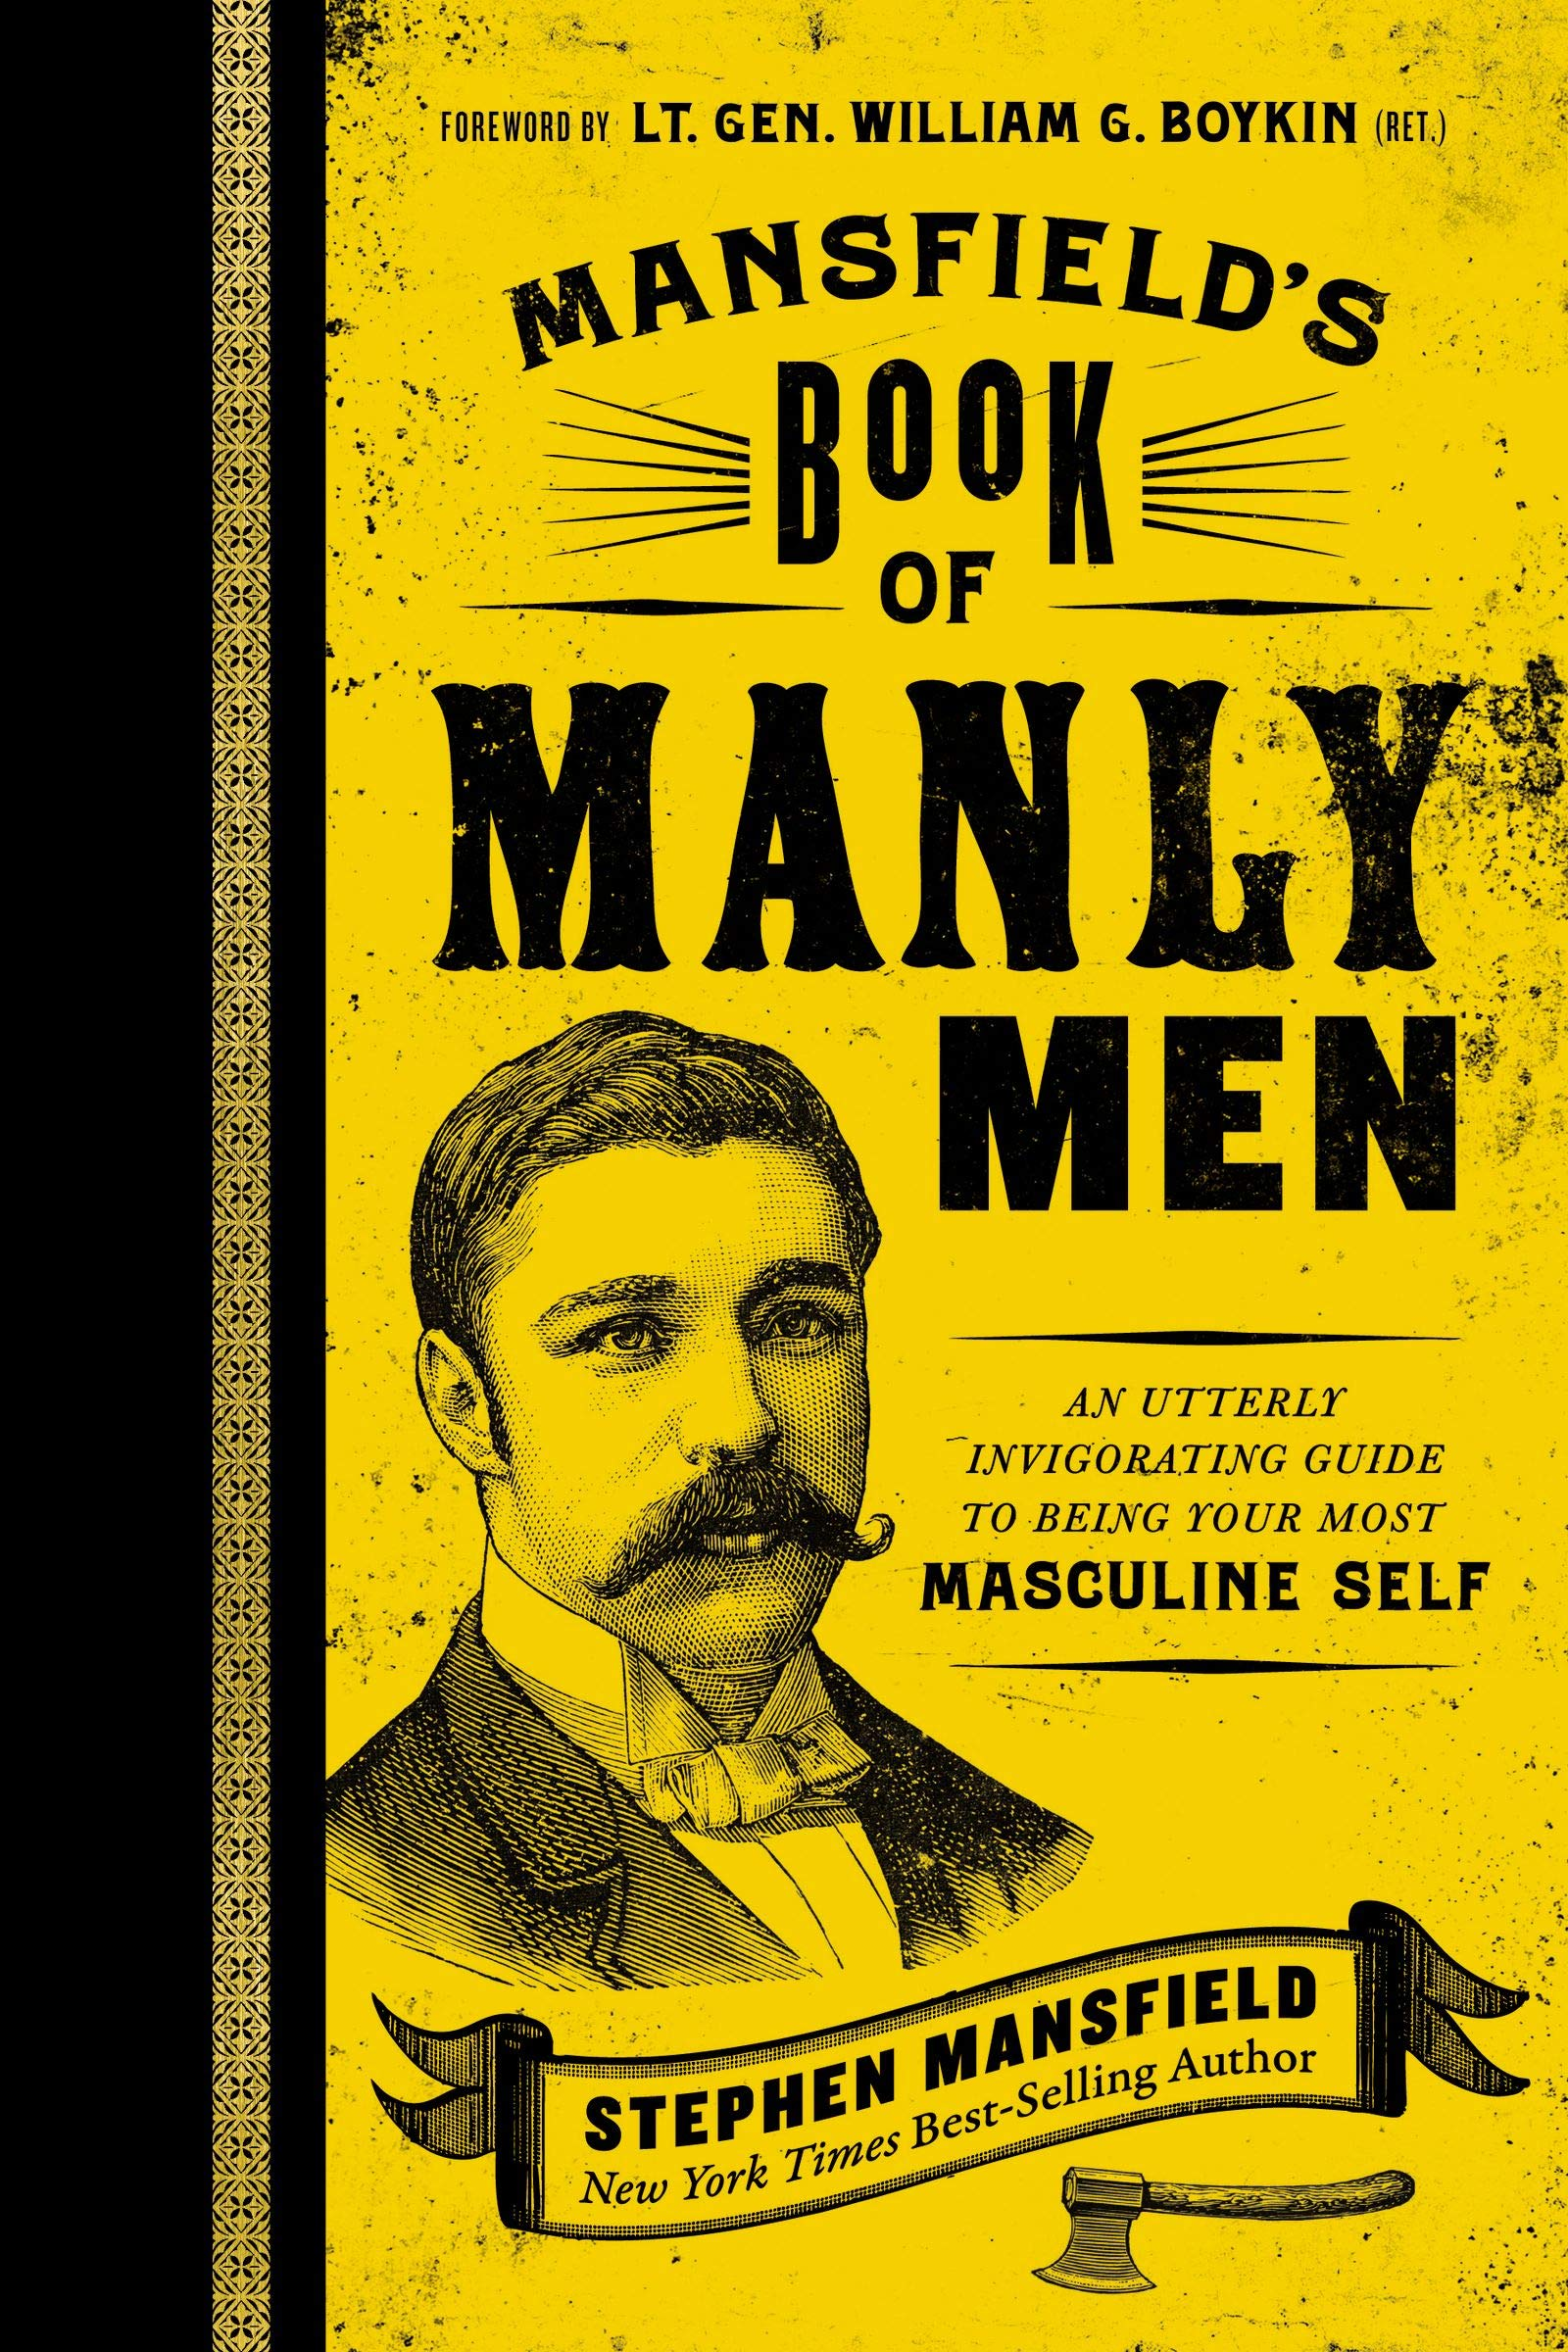 An Utterly Invigorating Guide to Being Your Most Masculine Self Mansfields Book of Manly Men